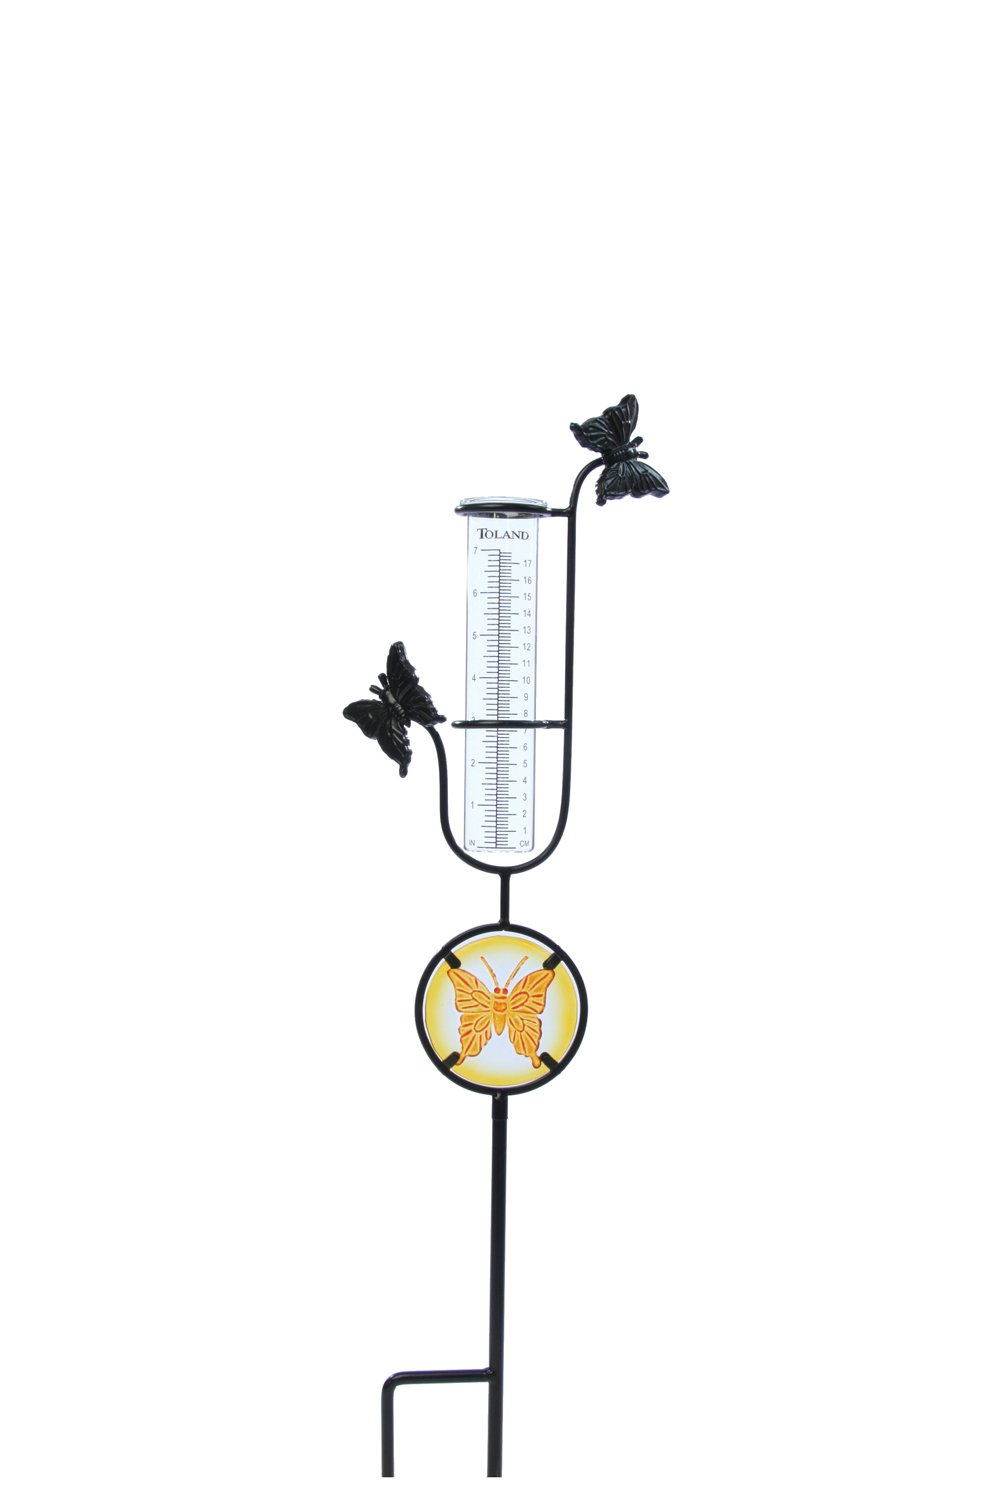 Toland Home Garden Butterfly Decorative Outdoor Garden Stake Rain Gauge Statue with Glass Udometer for Yards, Gardens, and Planters 218180